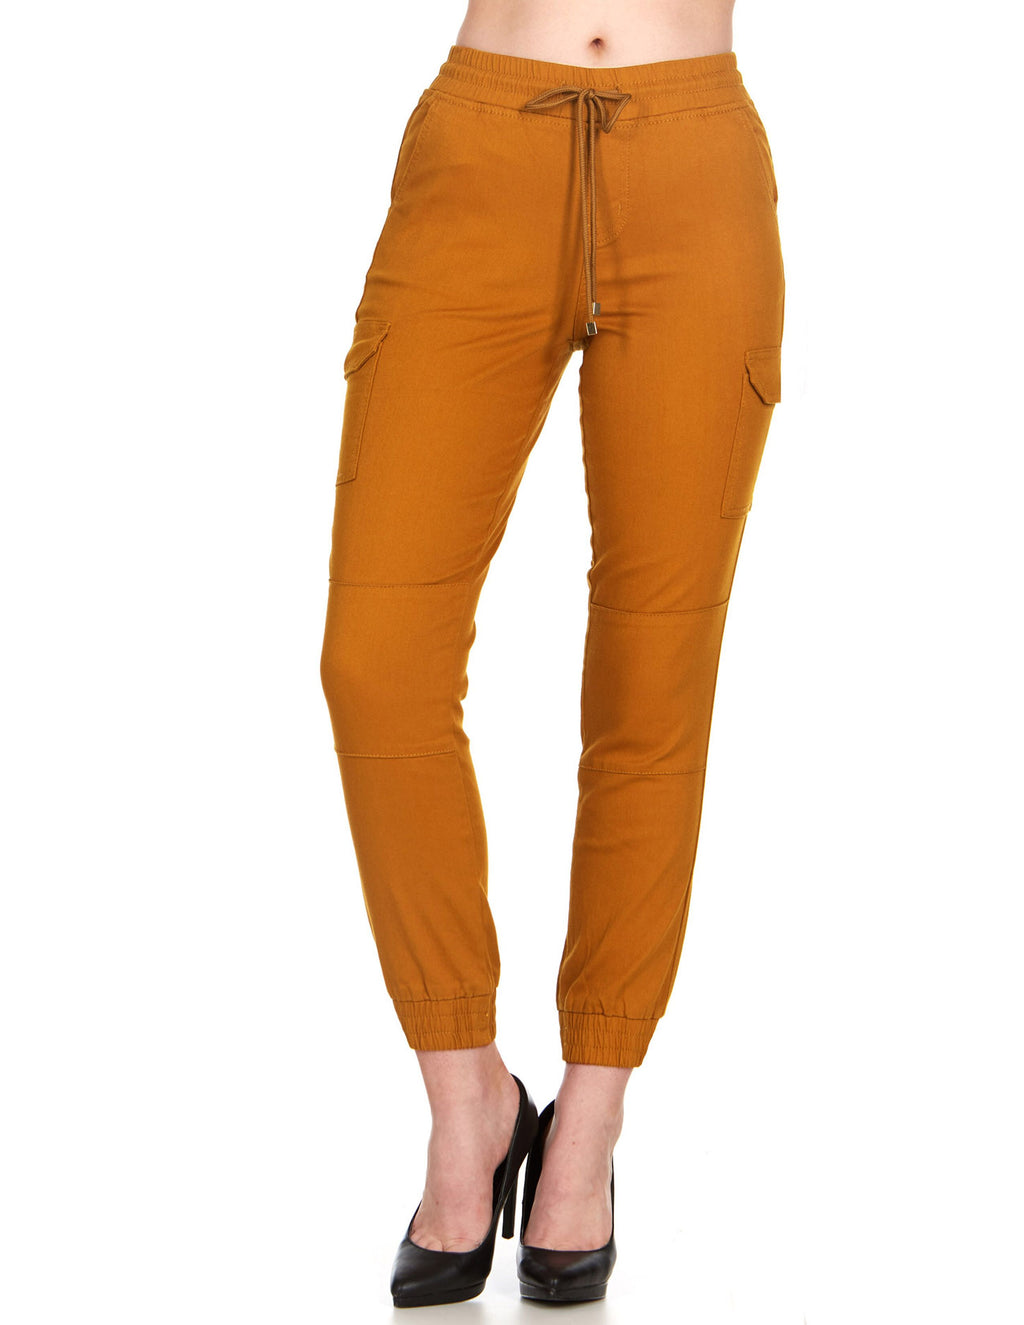 ELITE JEANS High Waisted Pull-On Cargo Joggers Women | Mustard (P19562-12)